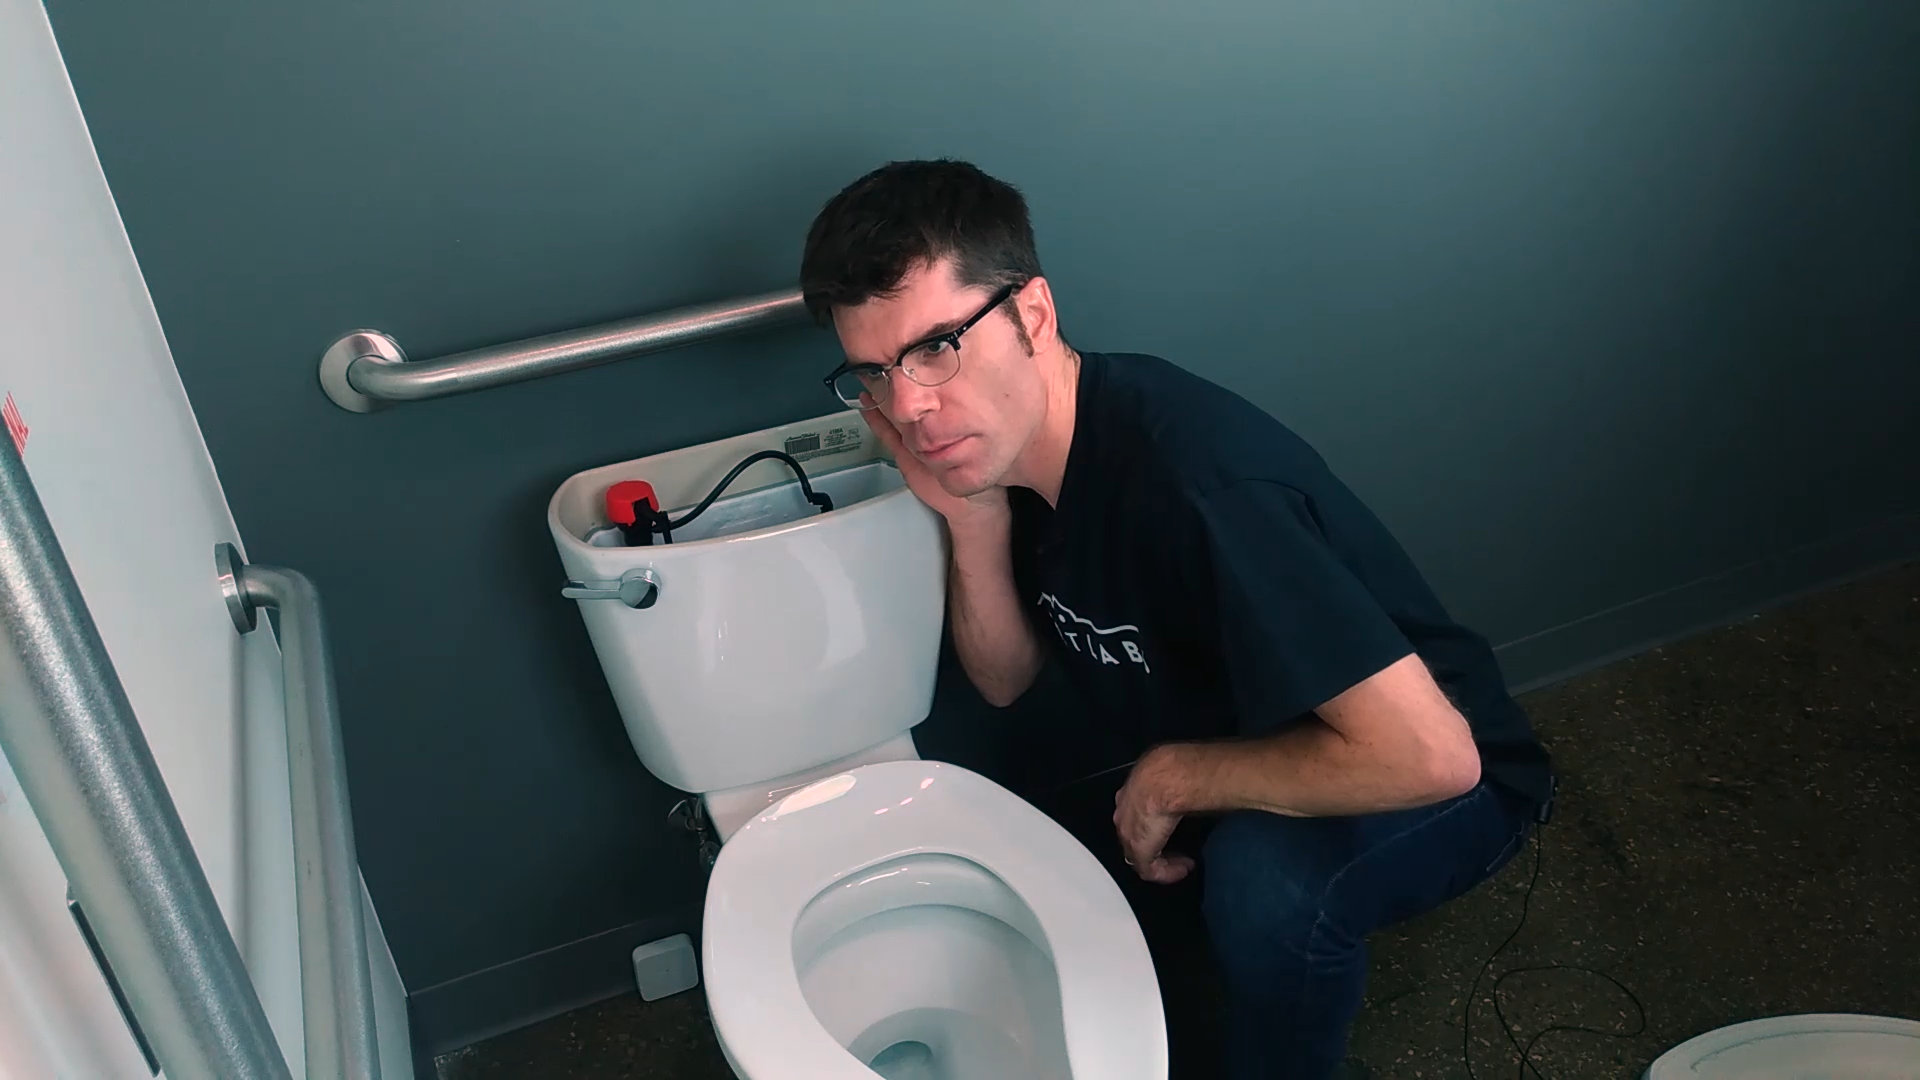 how to fix a running toilet the easy way - alert labs